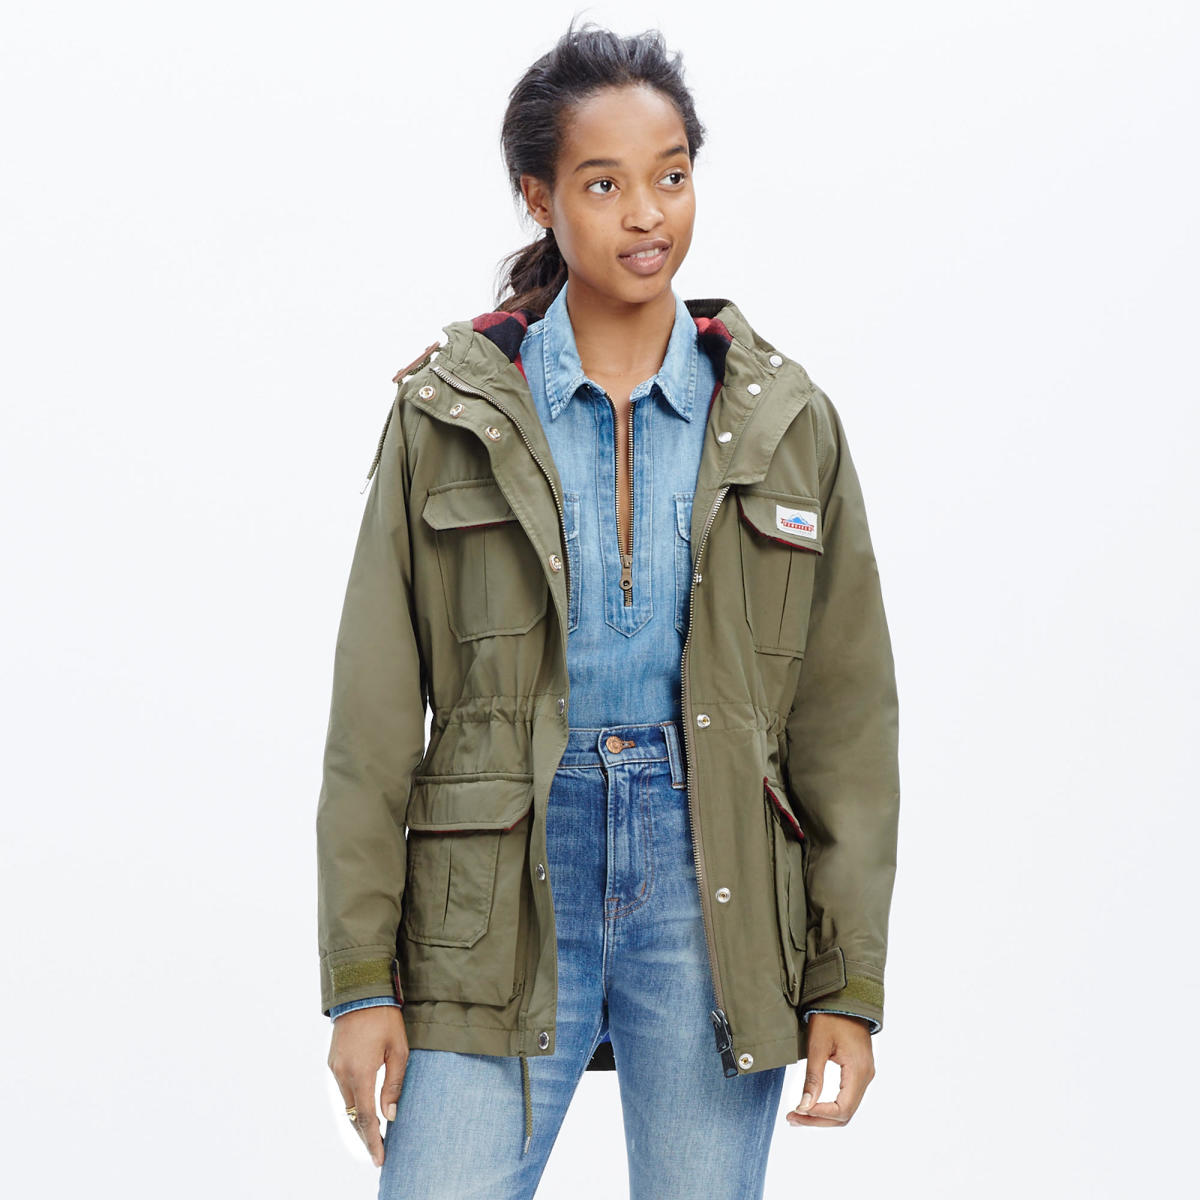 Madewell & Penfield parka, $200, available at Madewell.